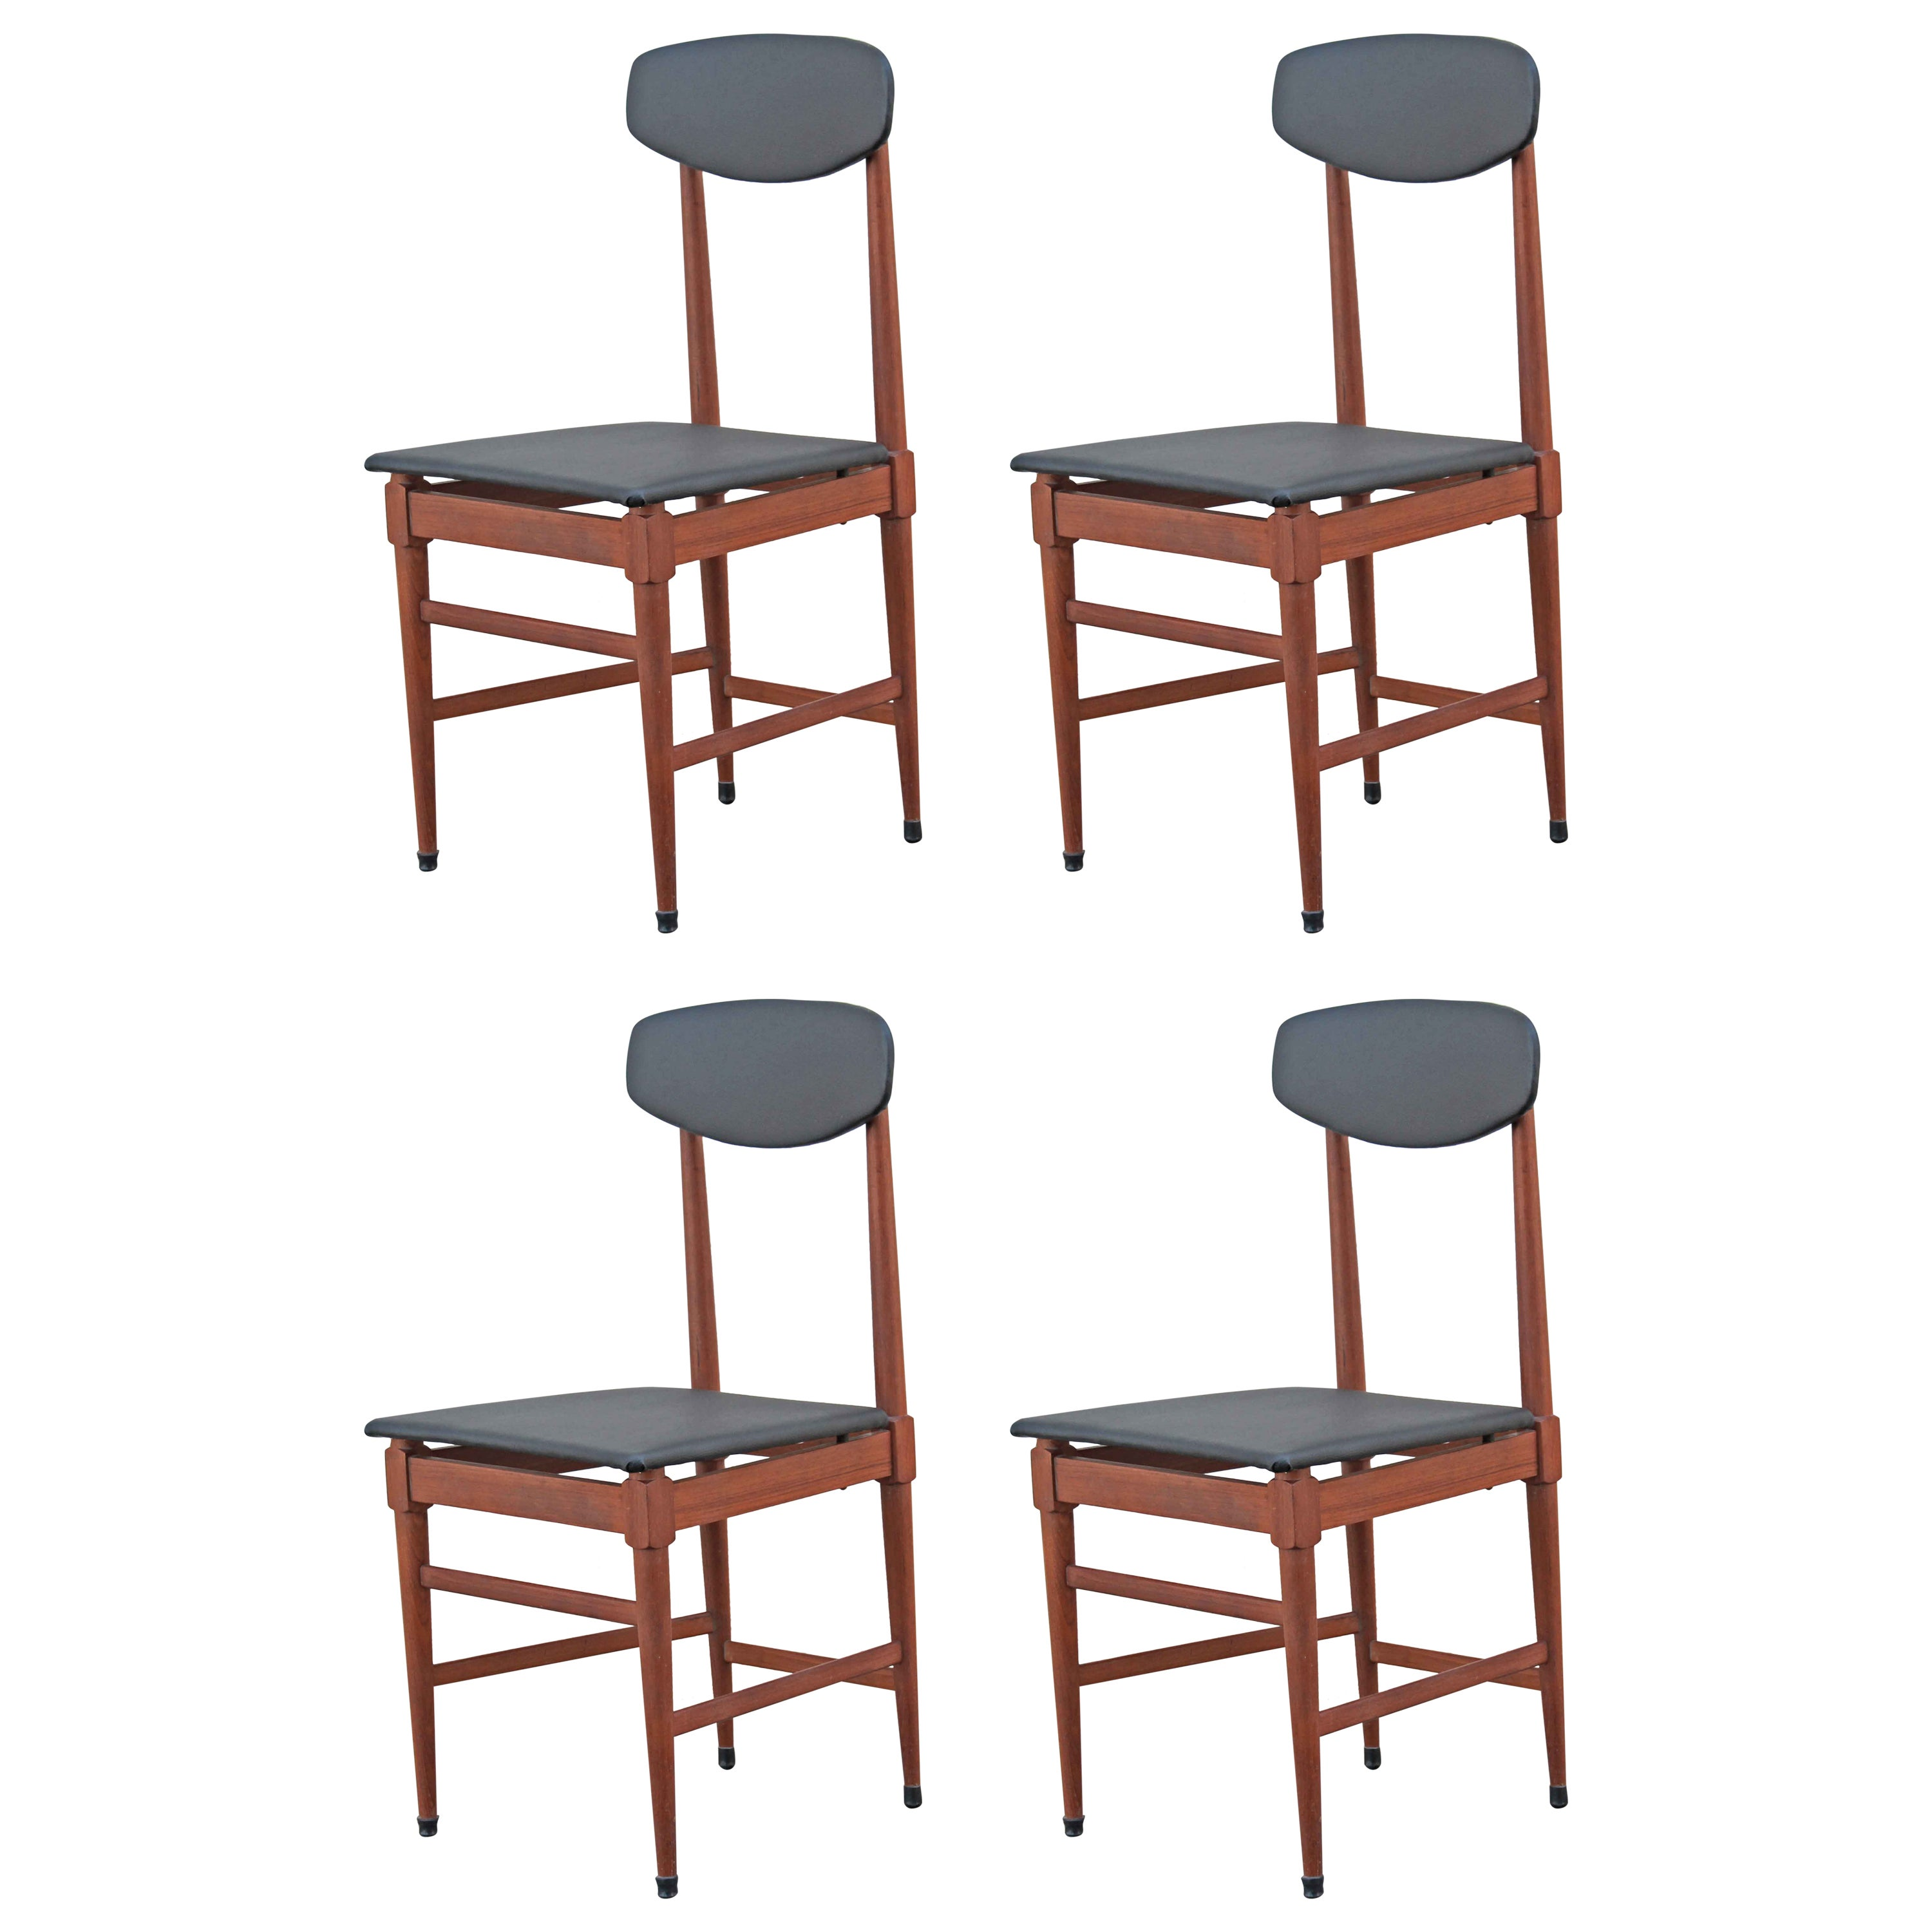 1960s Vintage Scandinavian Dining Chairs, Set of Four